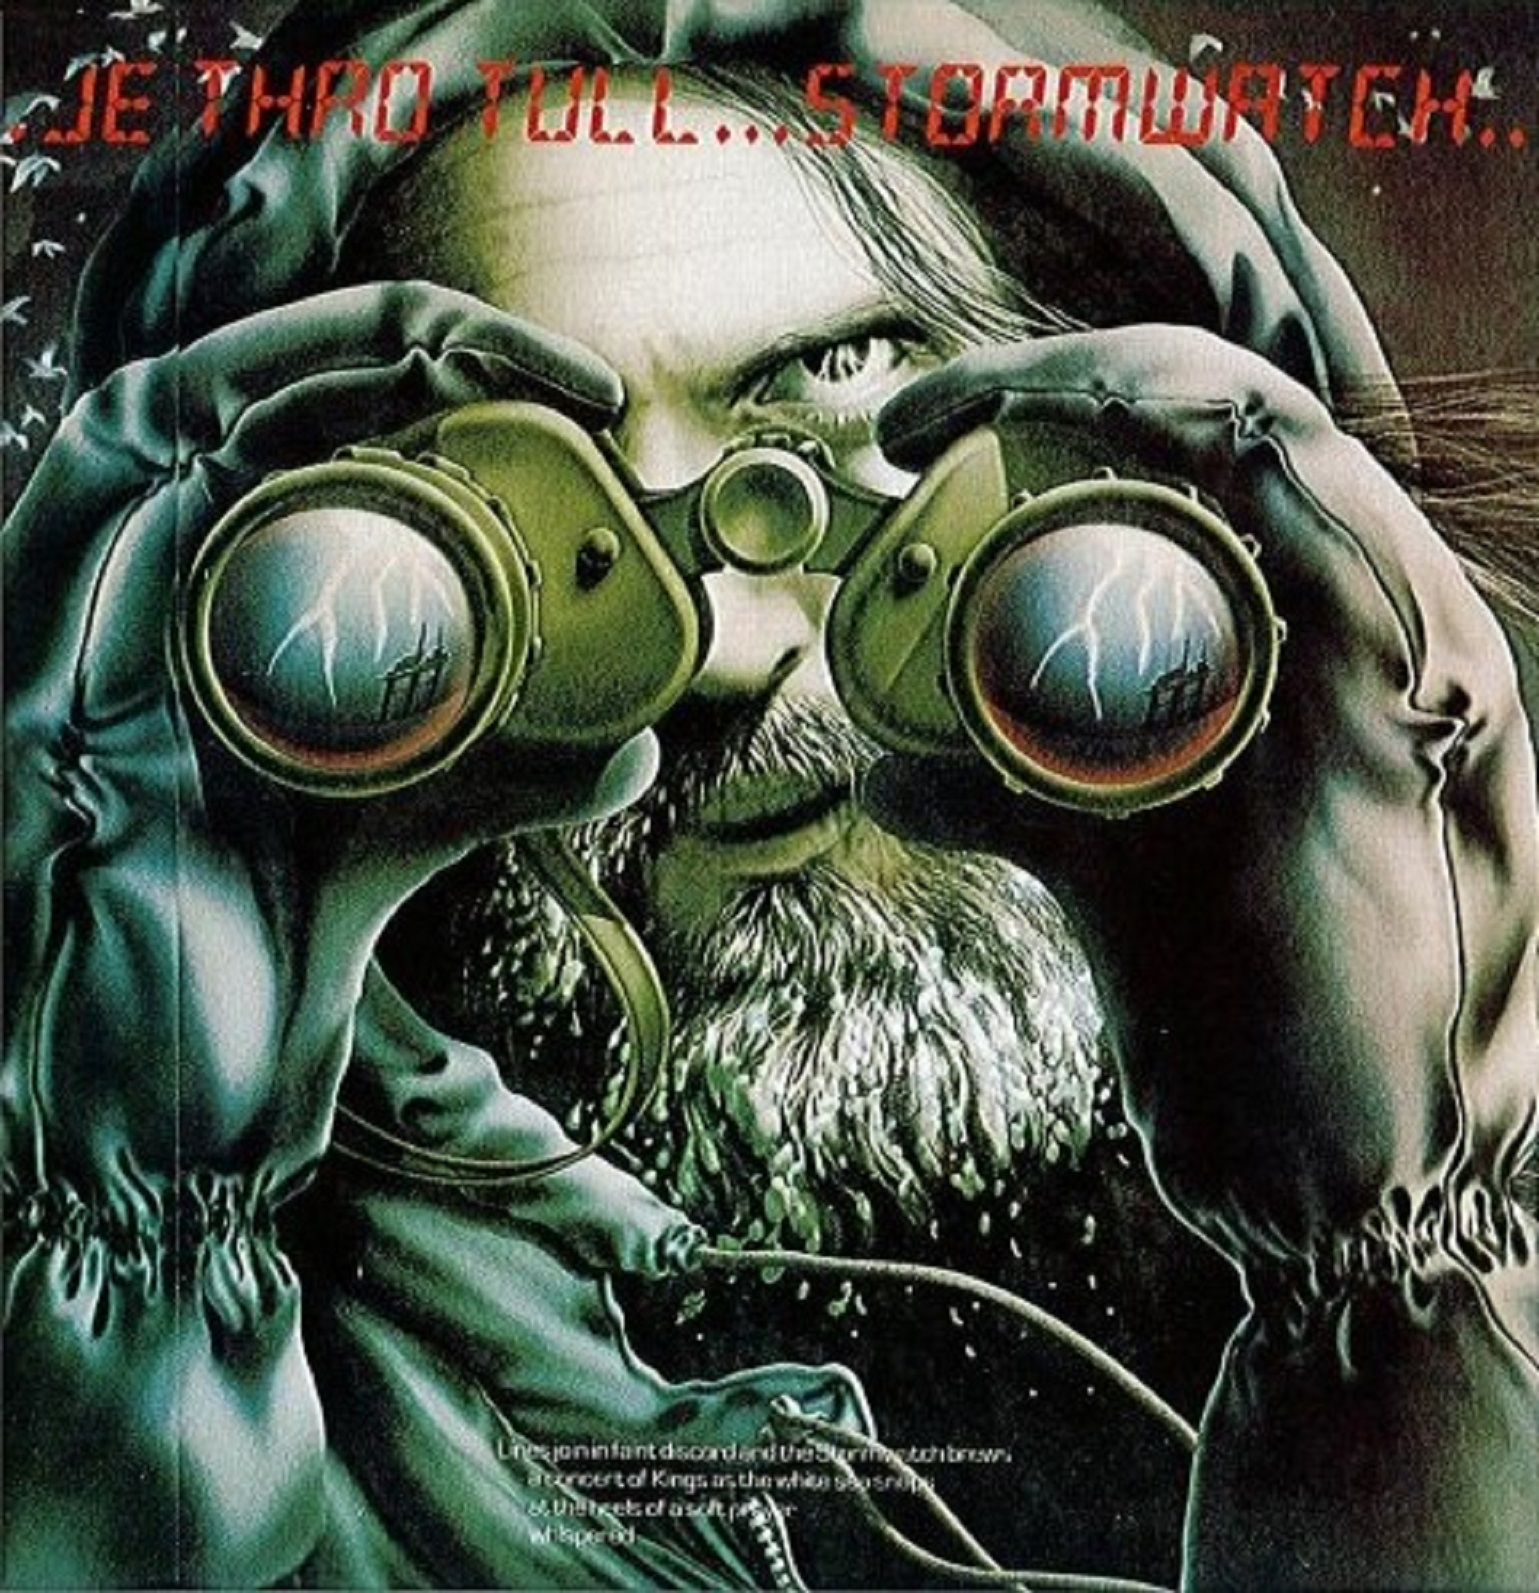 Rhino To Release Jethro Tull's STORMWATCH 40th Anniversary Edition